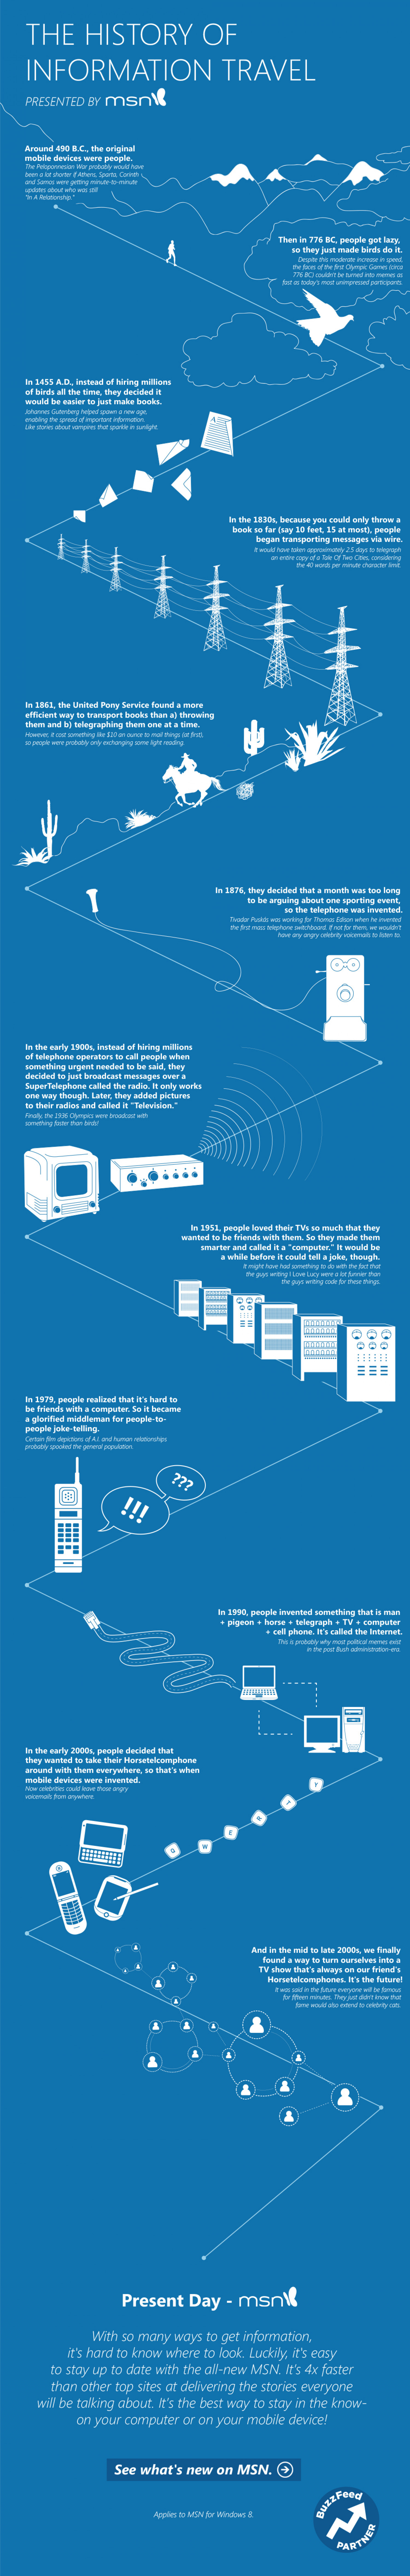 Visual History Of How Information Has Traveled Infographic